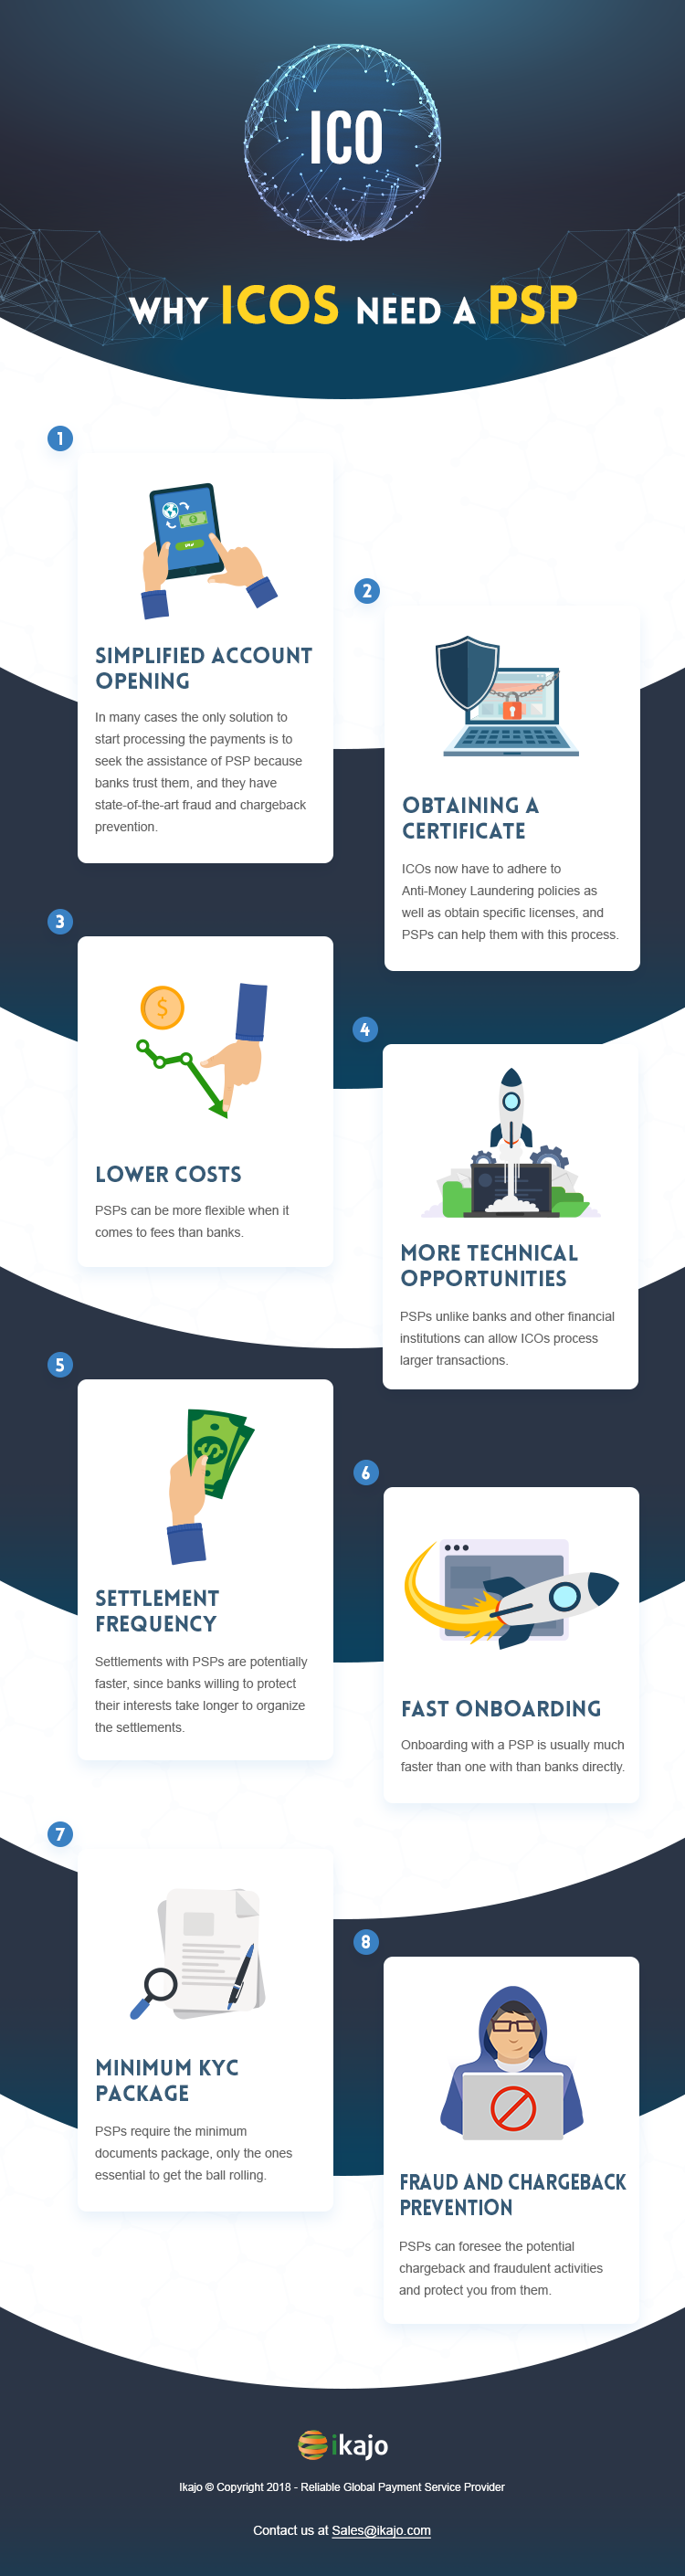 Eight reasons why ICOs need a PSP in an infographics